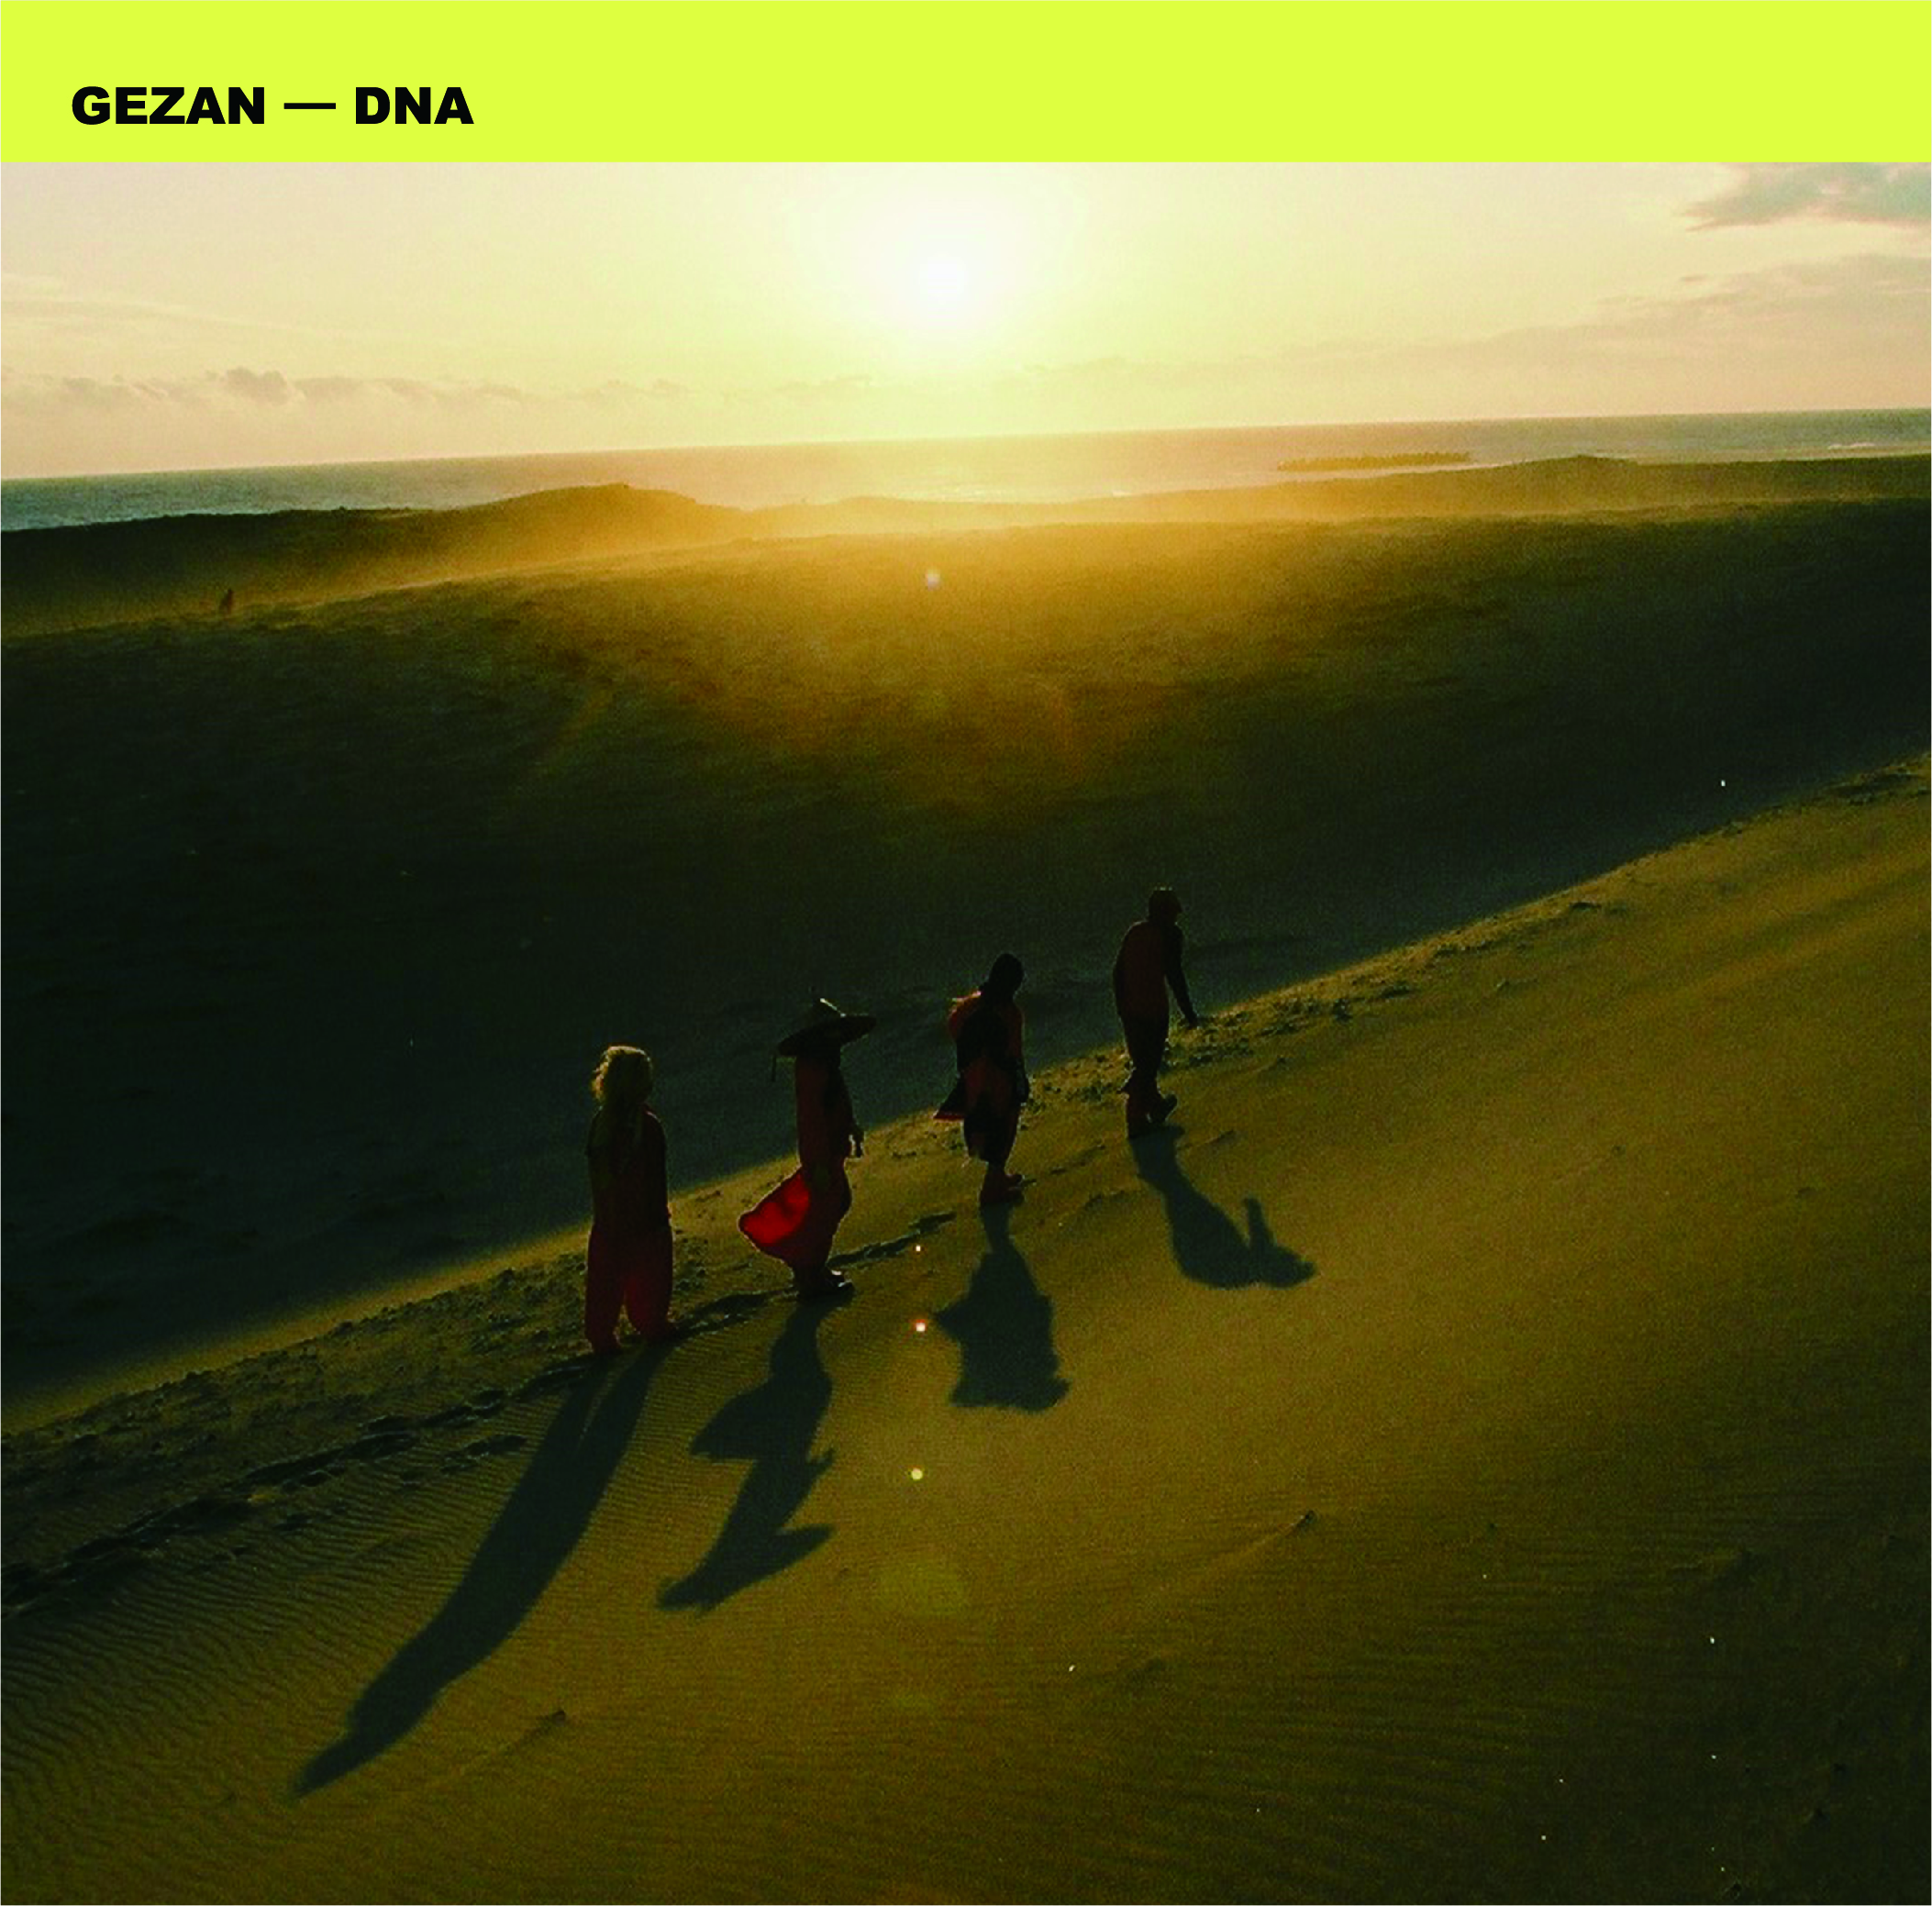 GEZAN / マヒトゥ・ザ・ピーポー / DNA / DNA (IN HER SPRING VERSION)